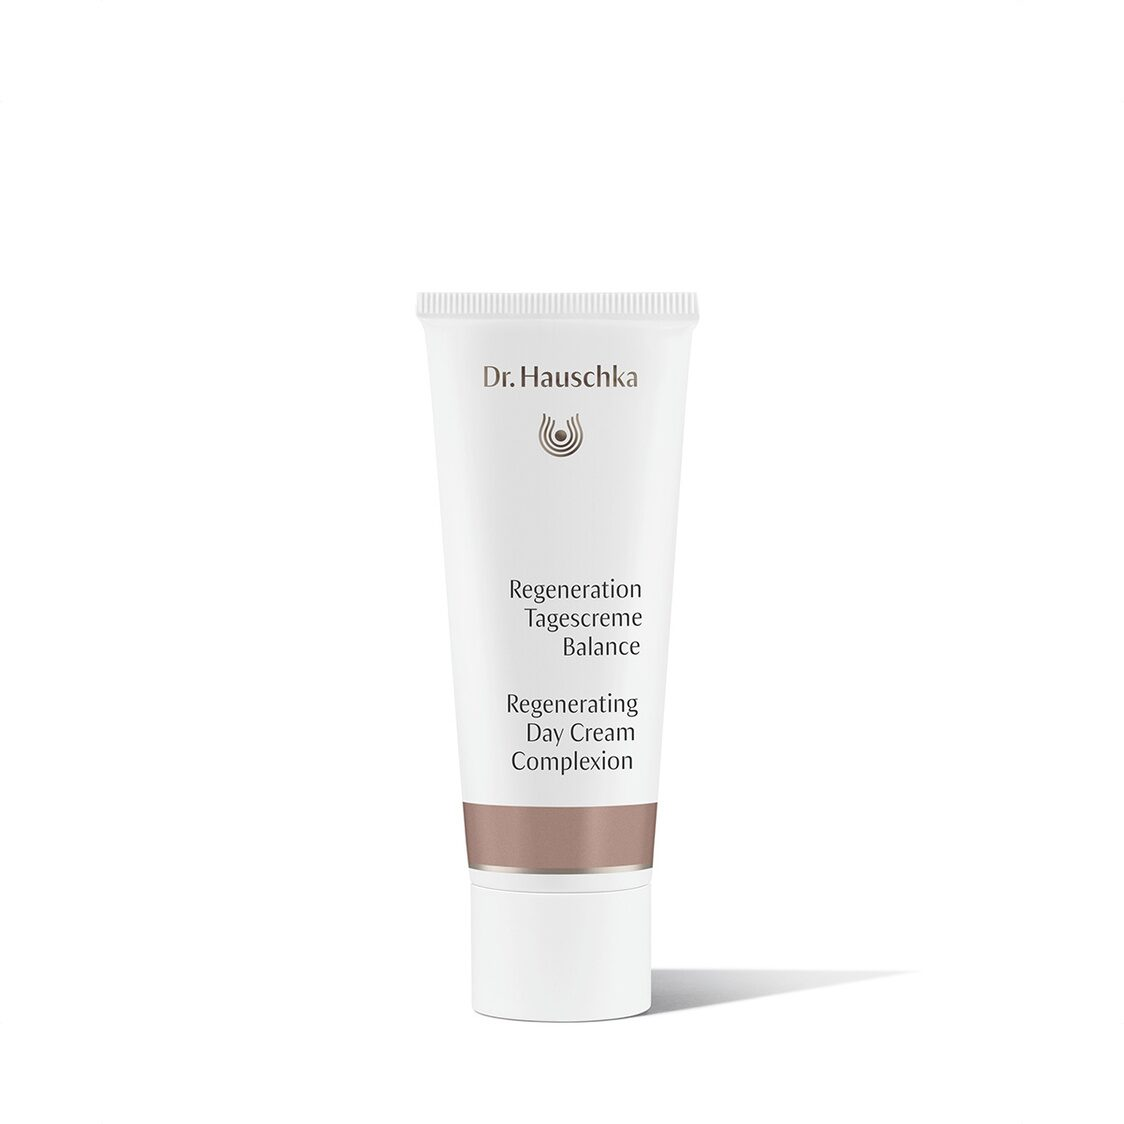 DrHauschka Regenerating Day Cream Complexion 40ml